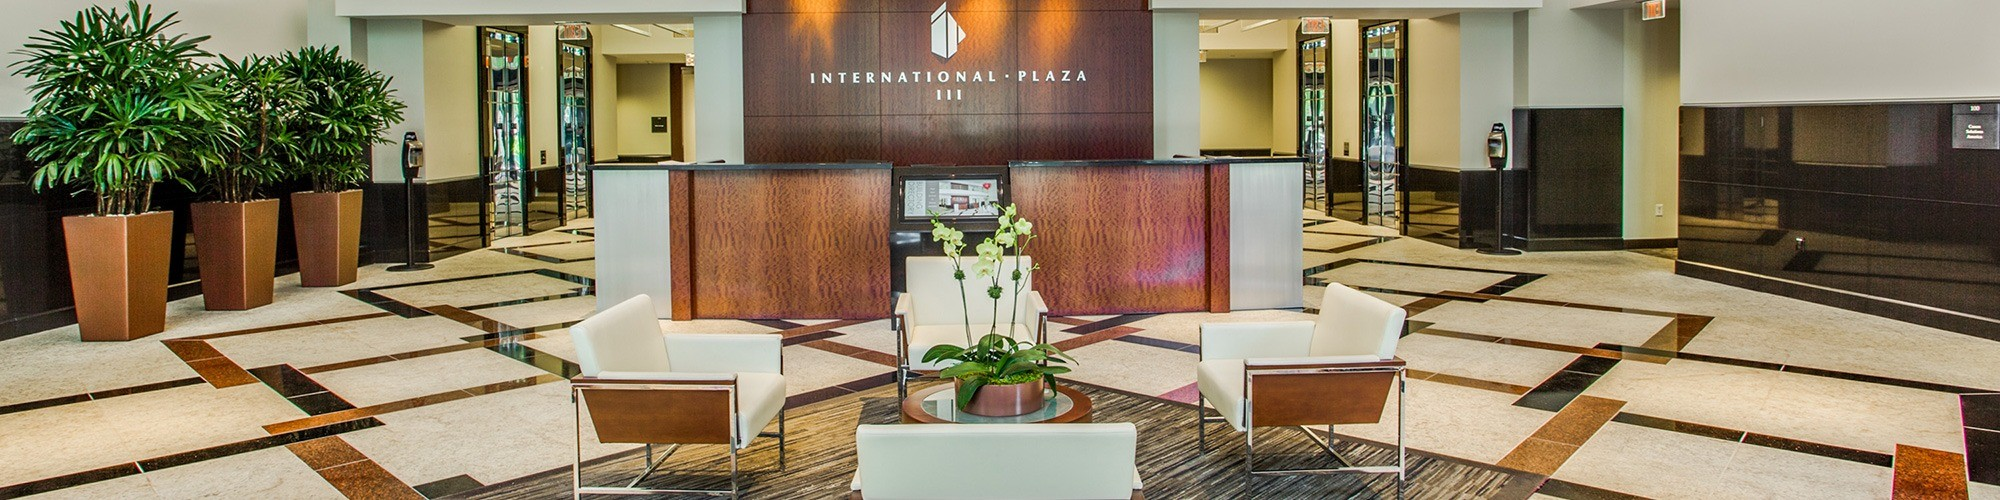 banner-jp-morgan-international-plaza-dallas-lobby.jpg